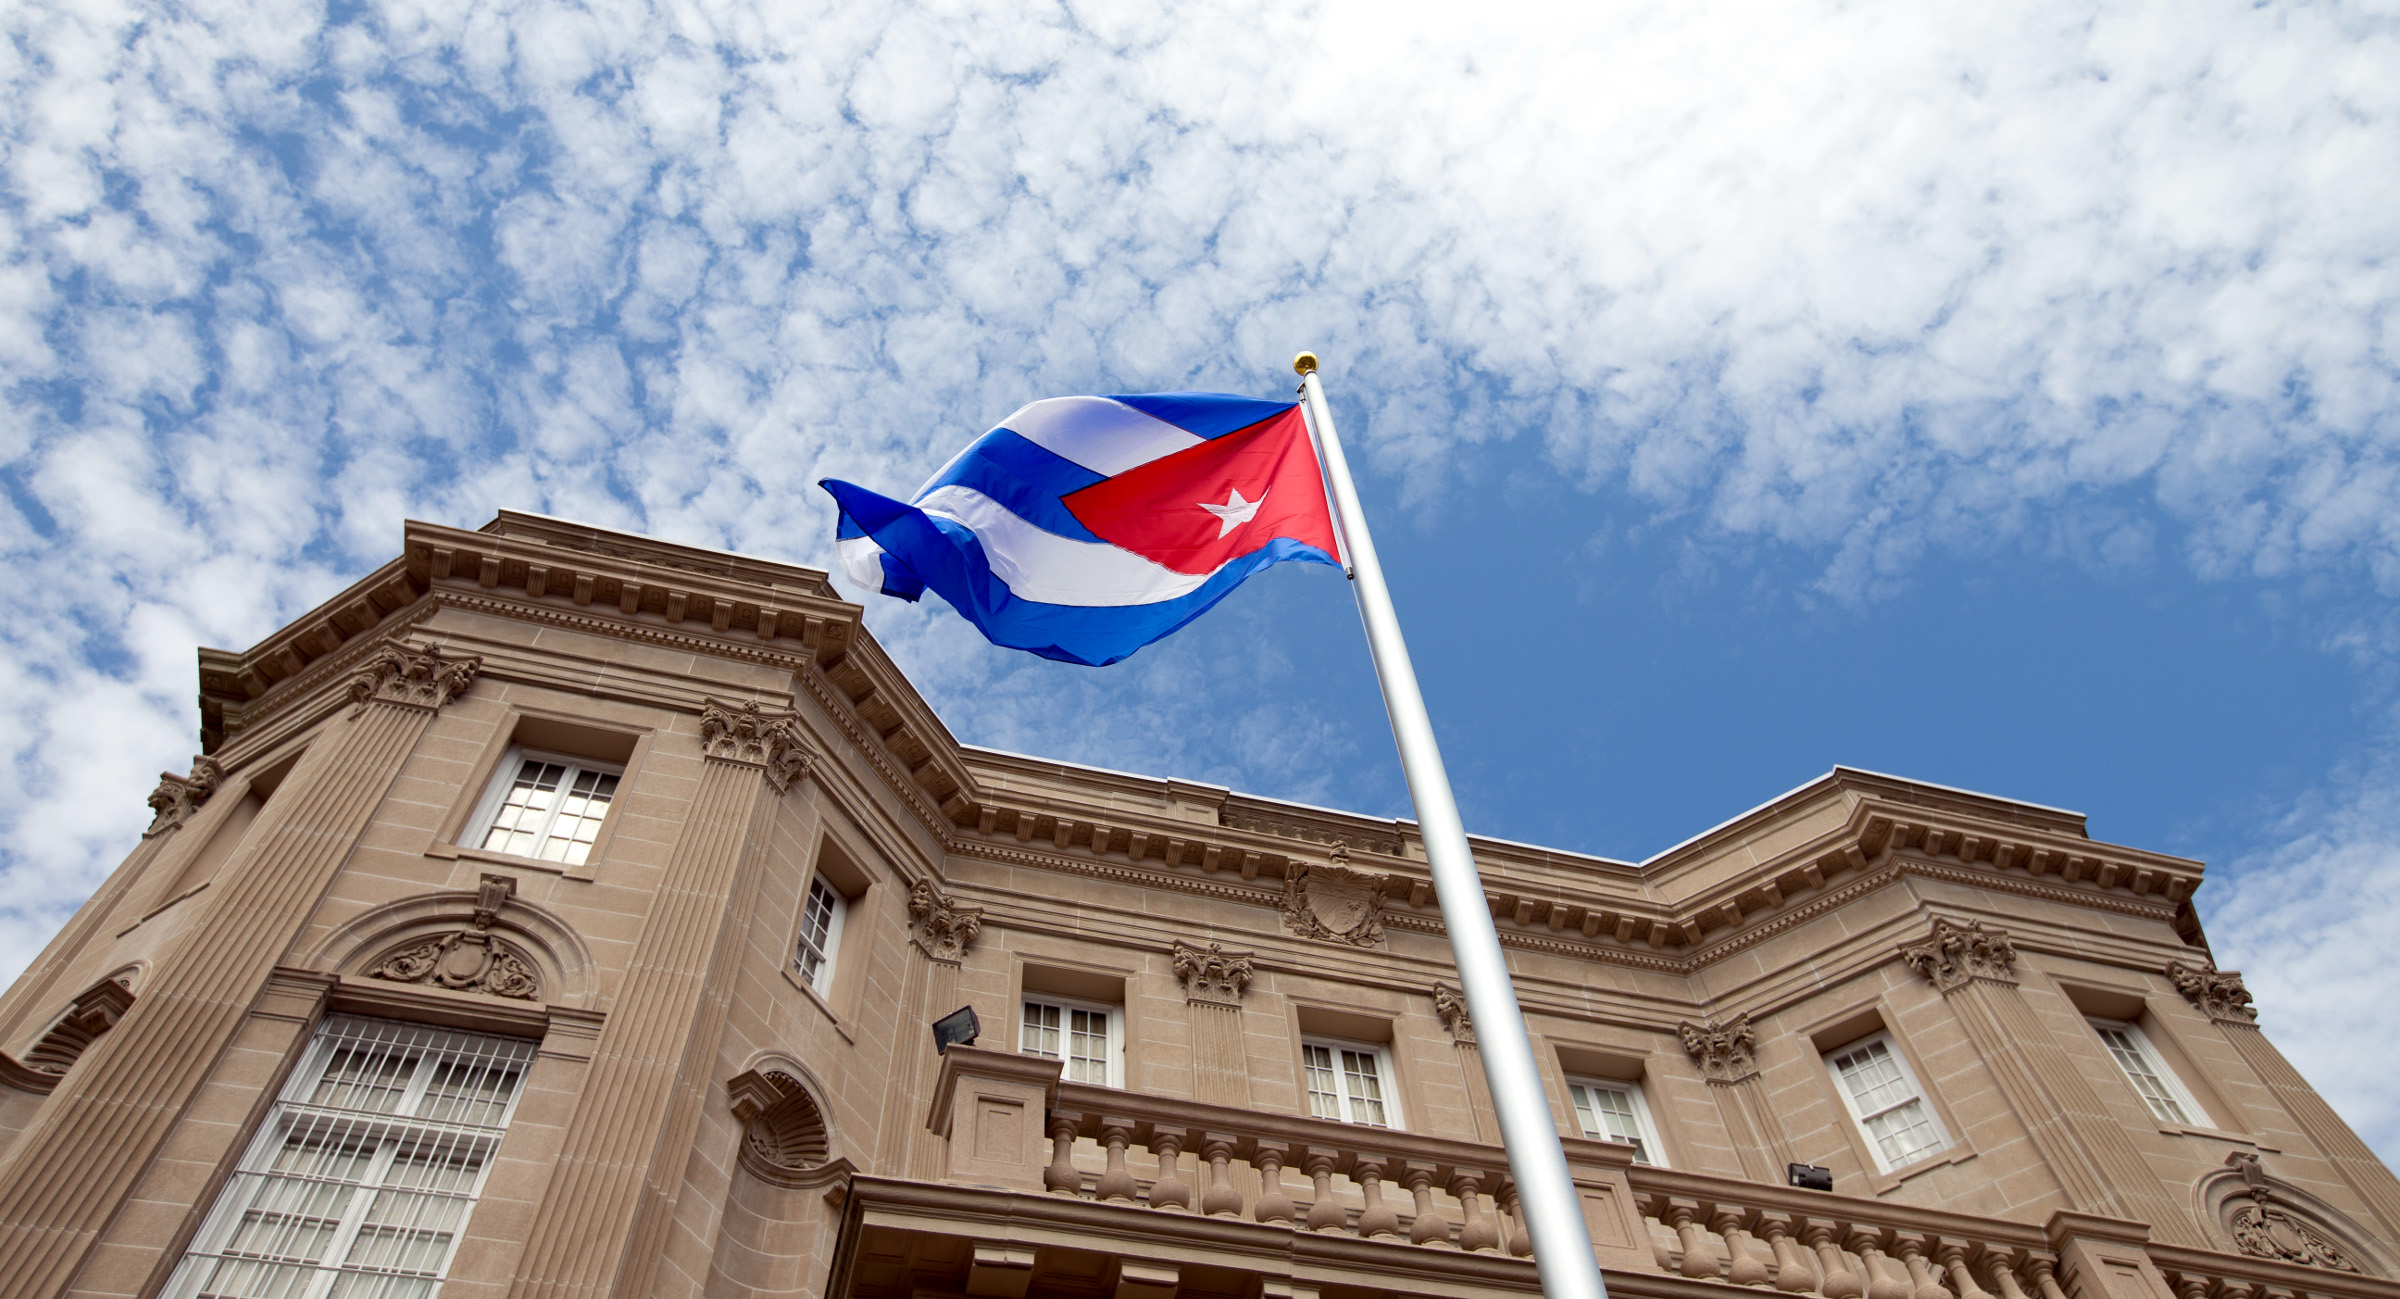 The Cuban flag is raised over their new embassy in Washington, Monday, July 20, 2015. Cuba's blue, red and white-starred flag was hoisted Monday at the country's embassy in Washington in a symbolic move signaling the start of a new post-Cold War era in U.S.-Cuba relations.